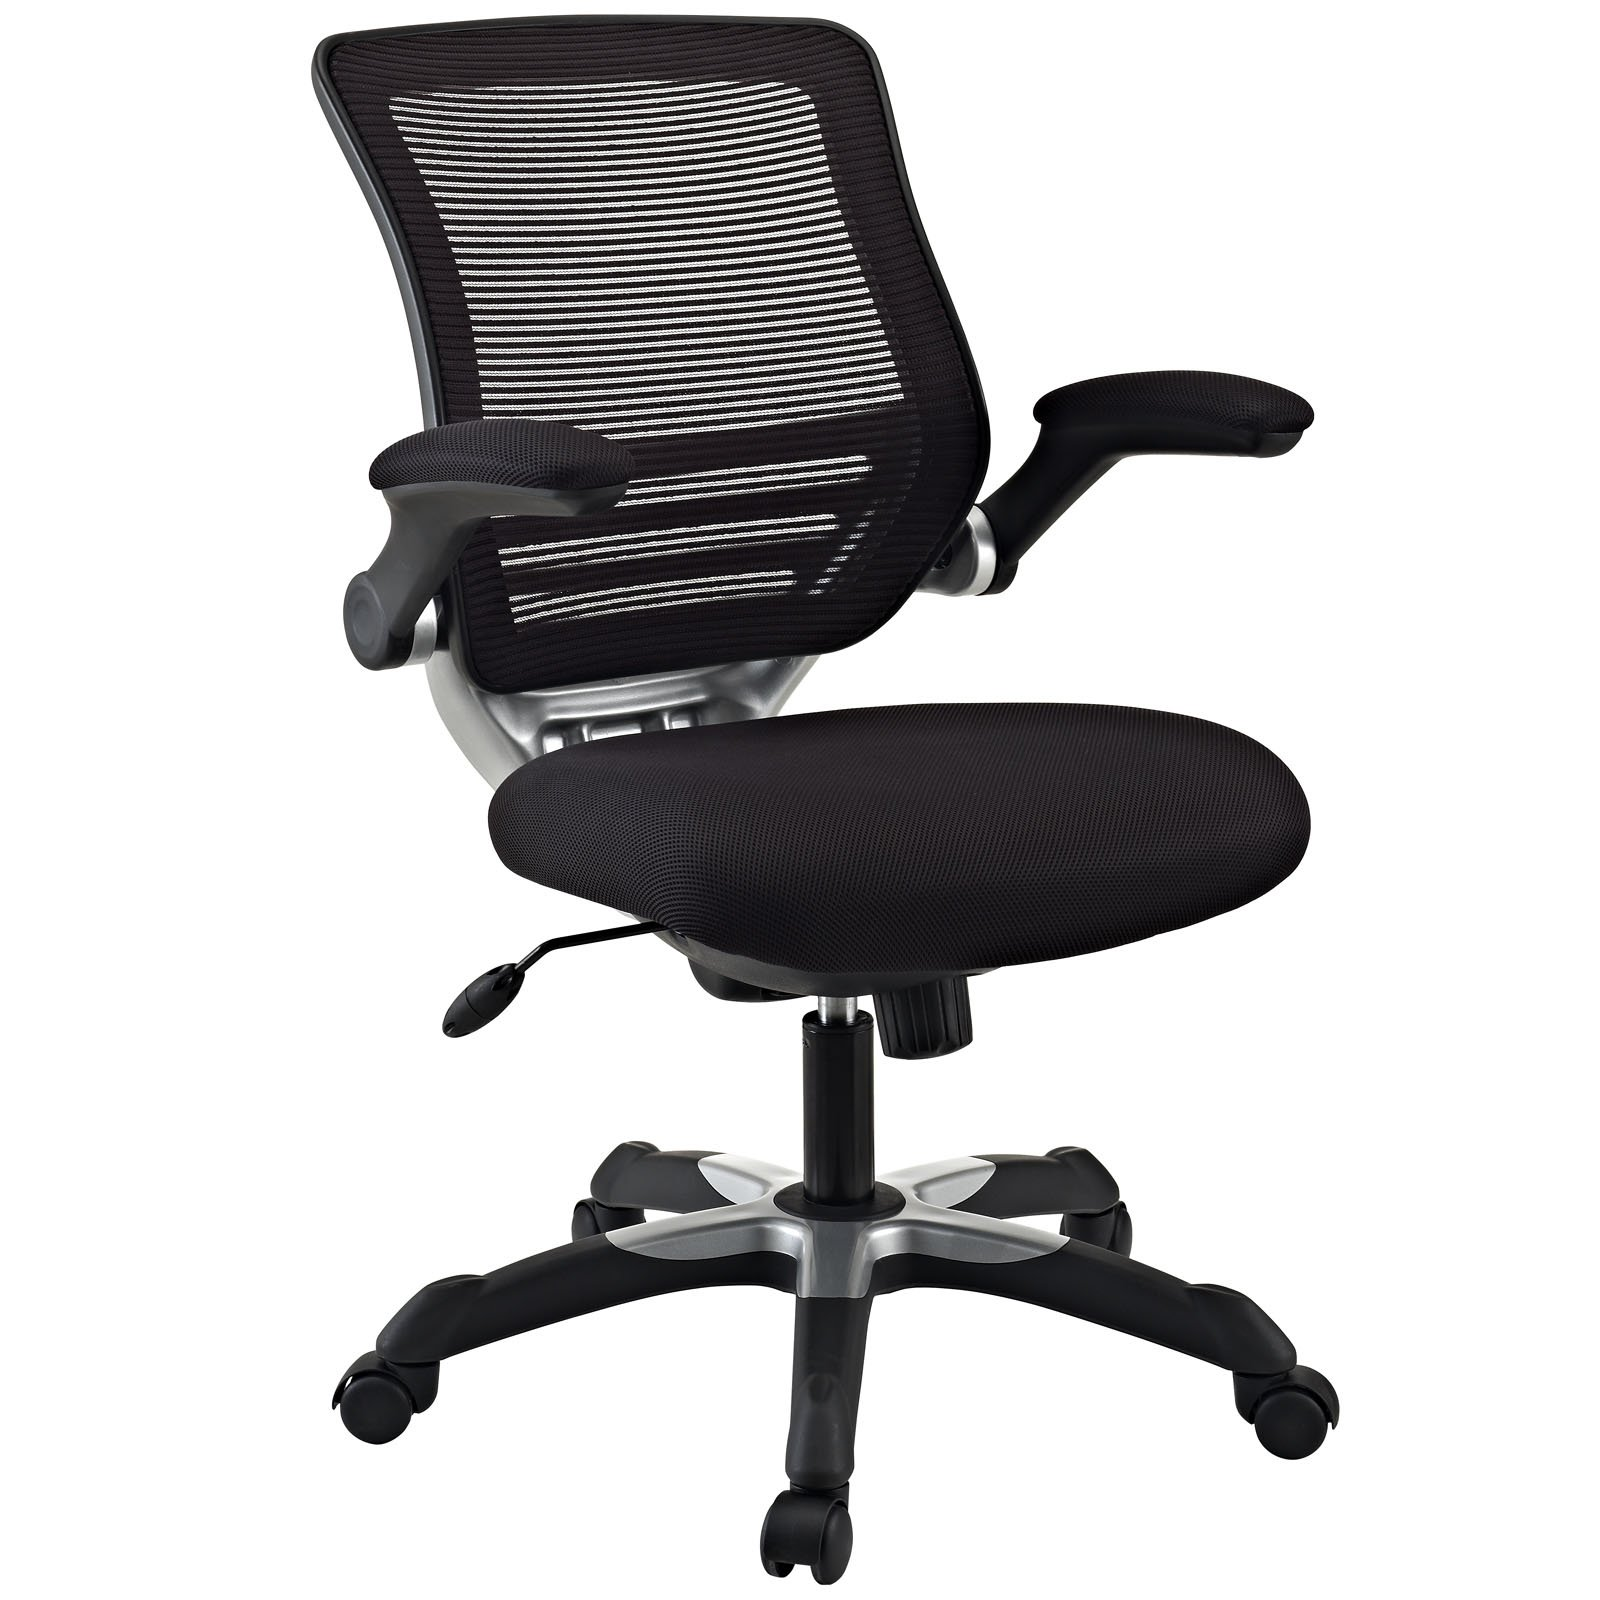 Modway Edge Mesh Back and Black Mesh Seat Office Chair With Flip-Up Arms - Ergonomic Desk And Computer Chair by Modway